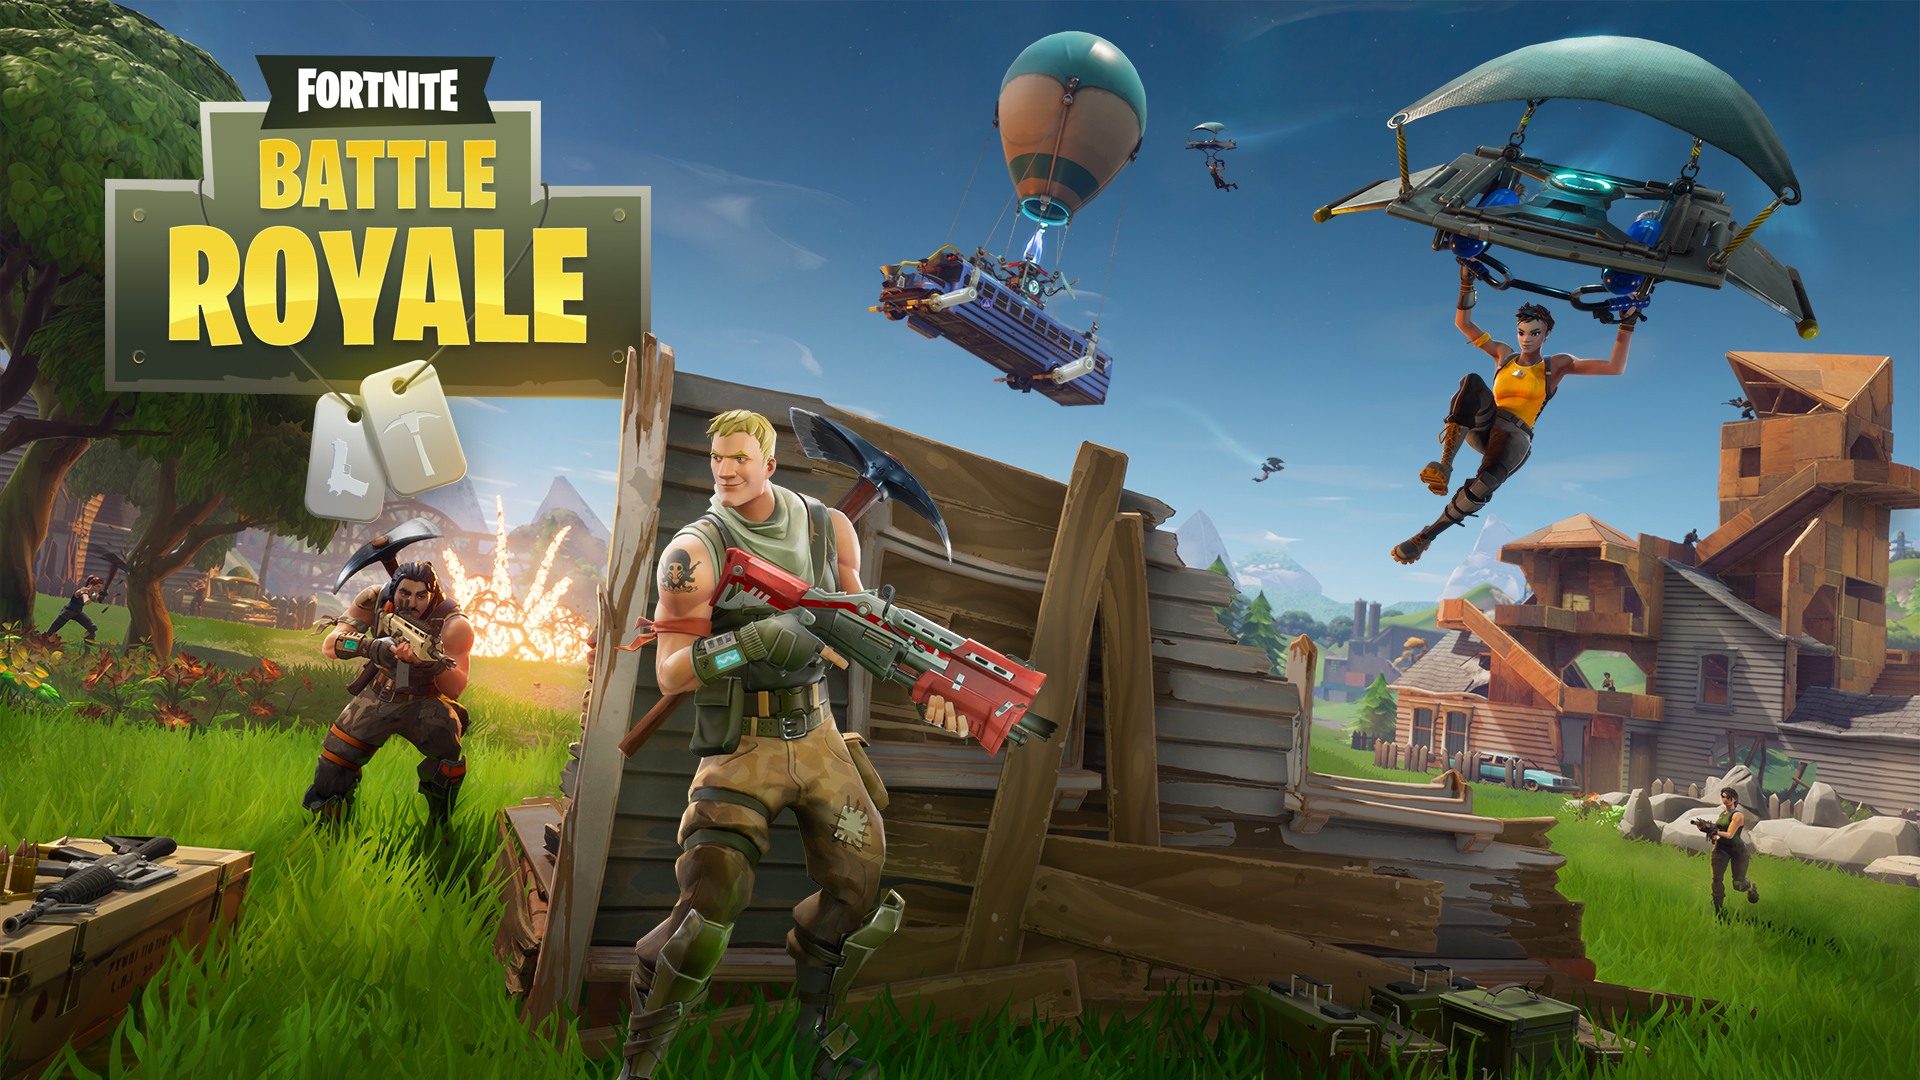 Photo of Fortnite Battle Royale has Managed to Gather Over 1 Million Players on its Official Release Day